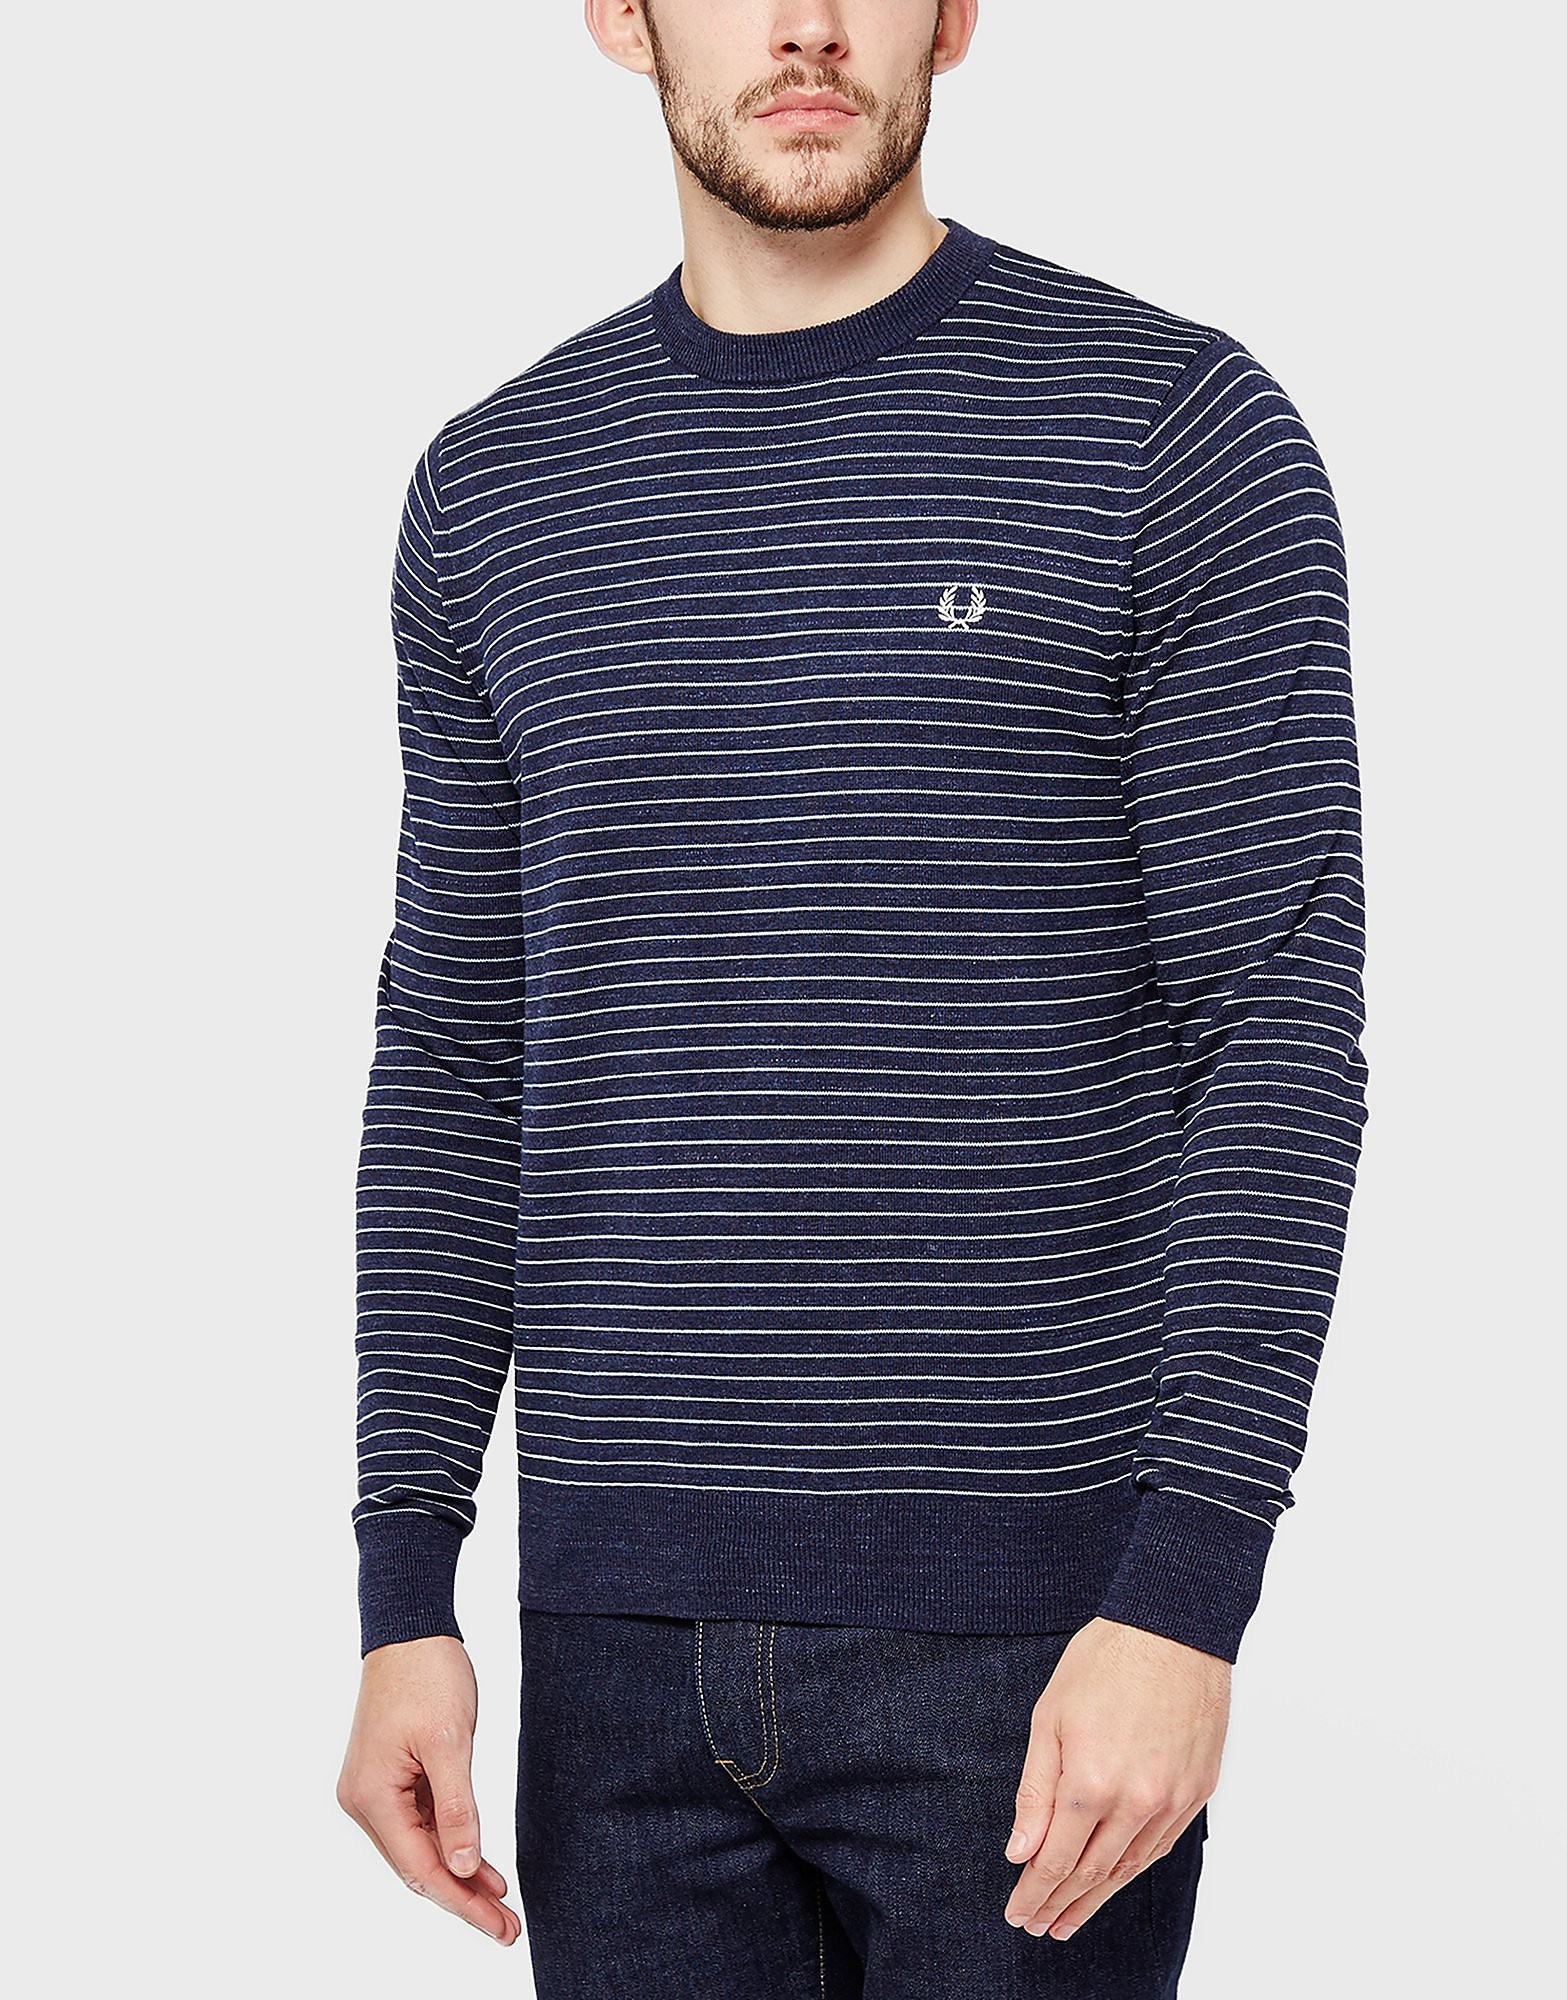 Fred Perry Striped Crew Sweatshirt  Navy Navy